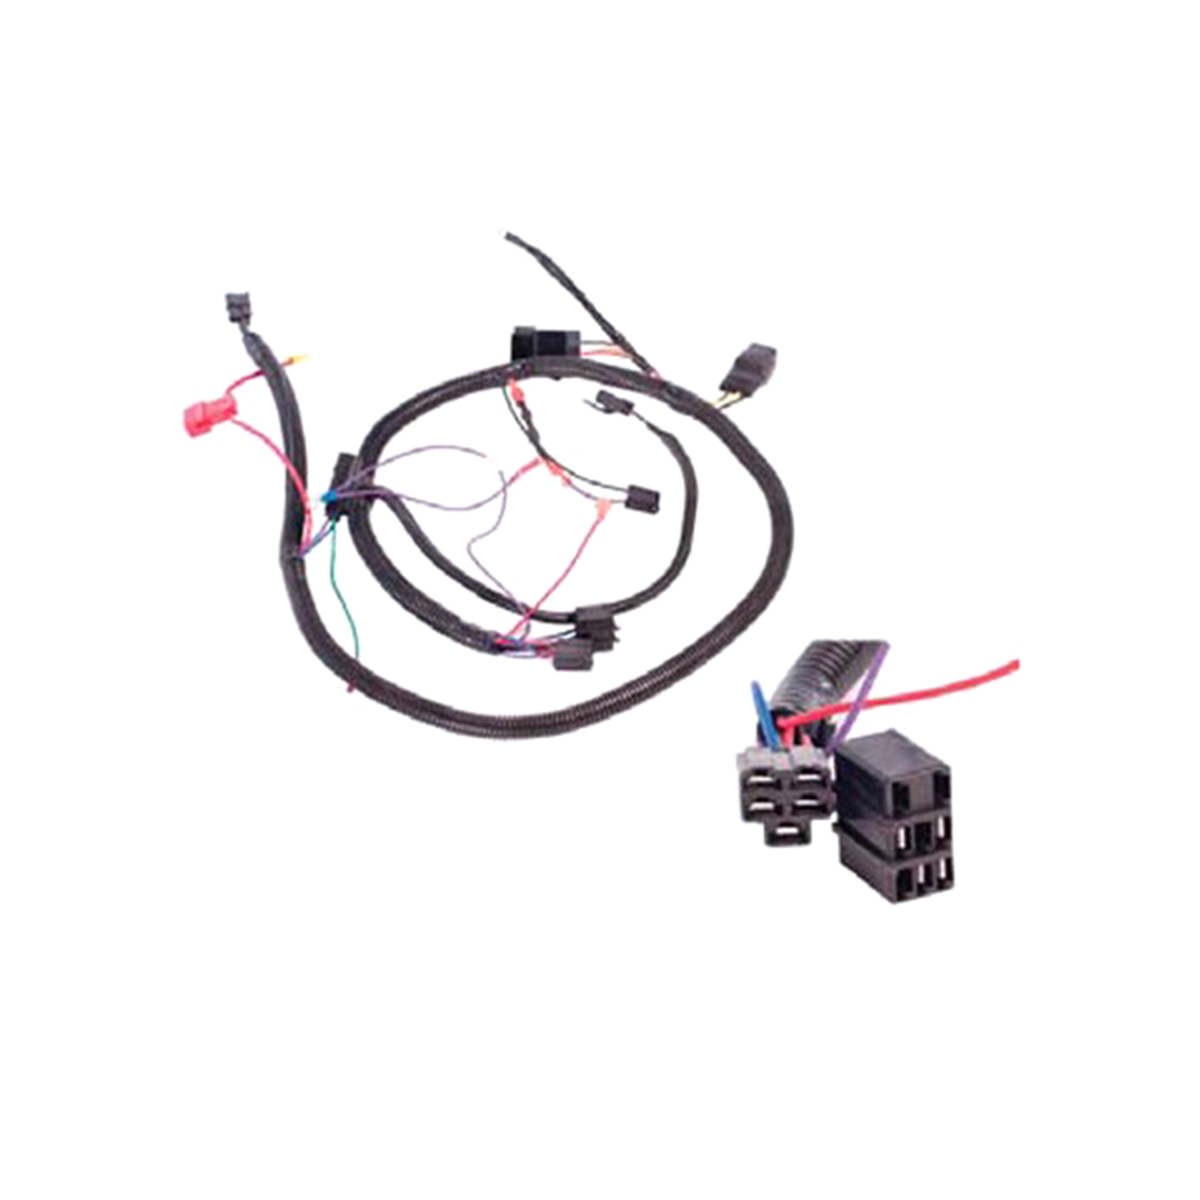 500073 Dixie Chopper Kohler 40HP Wiring Harness